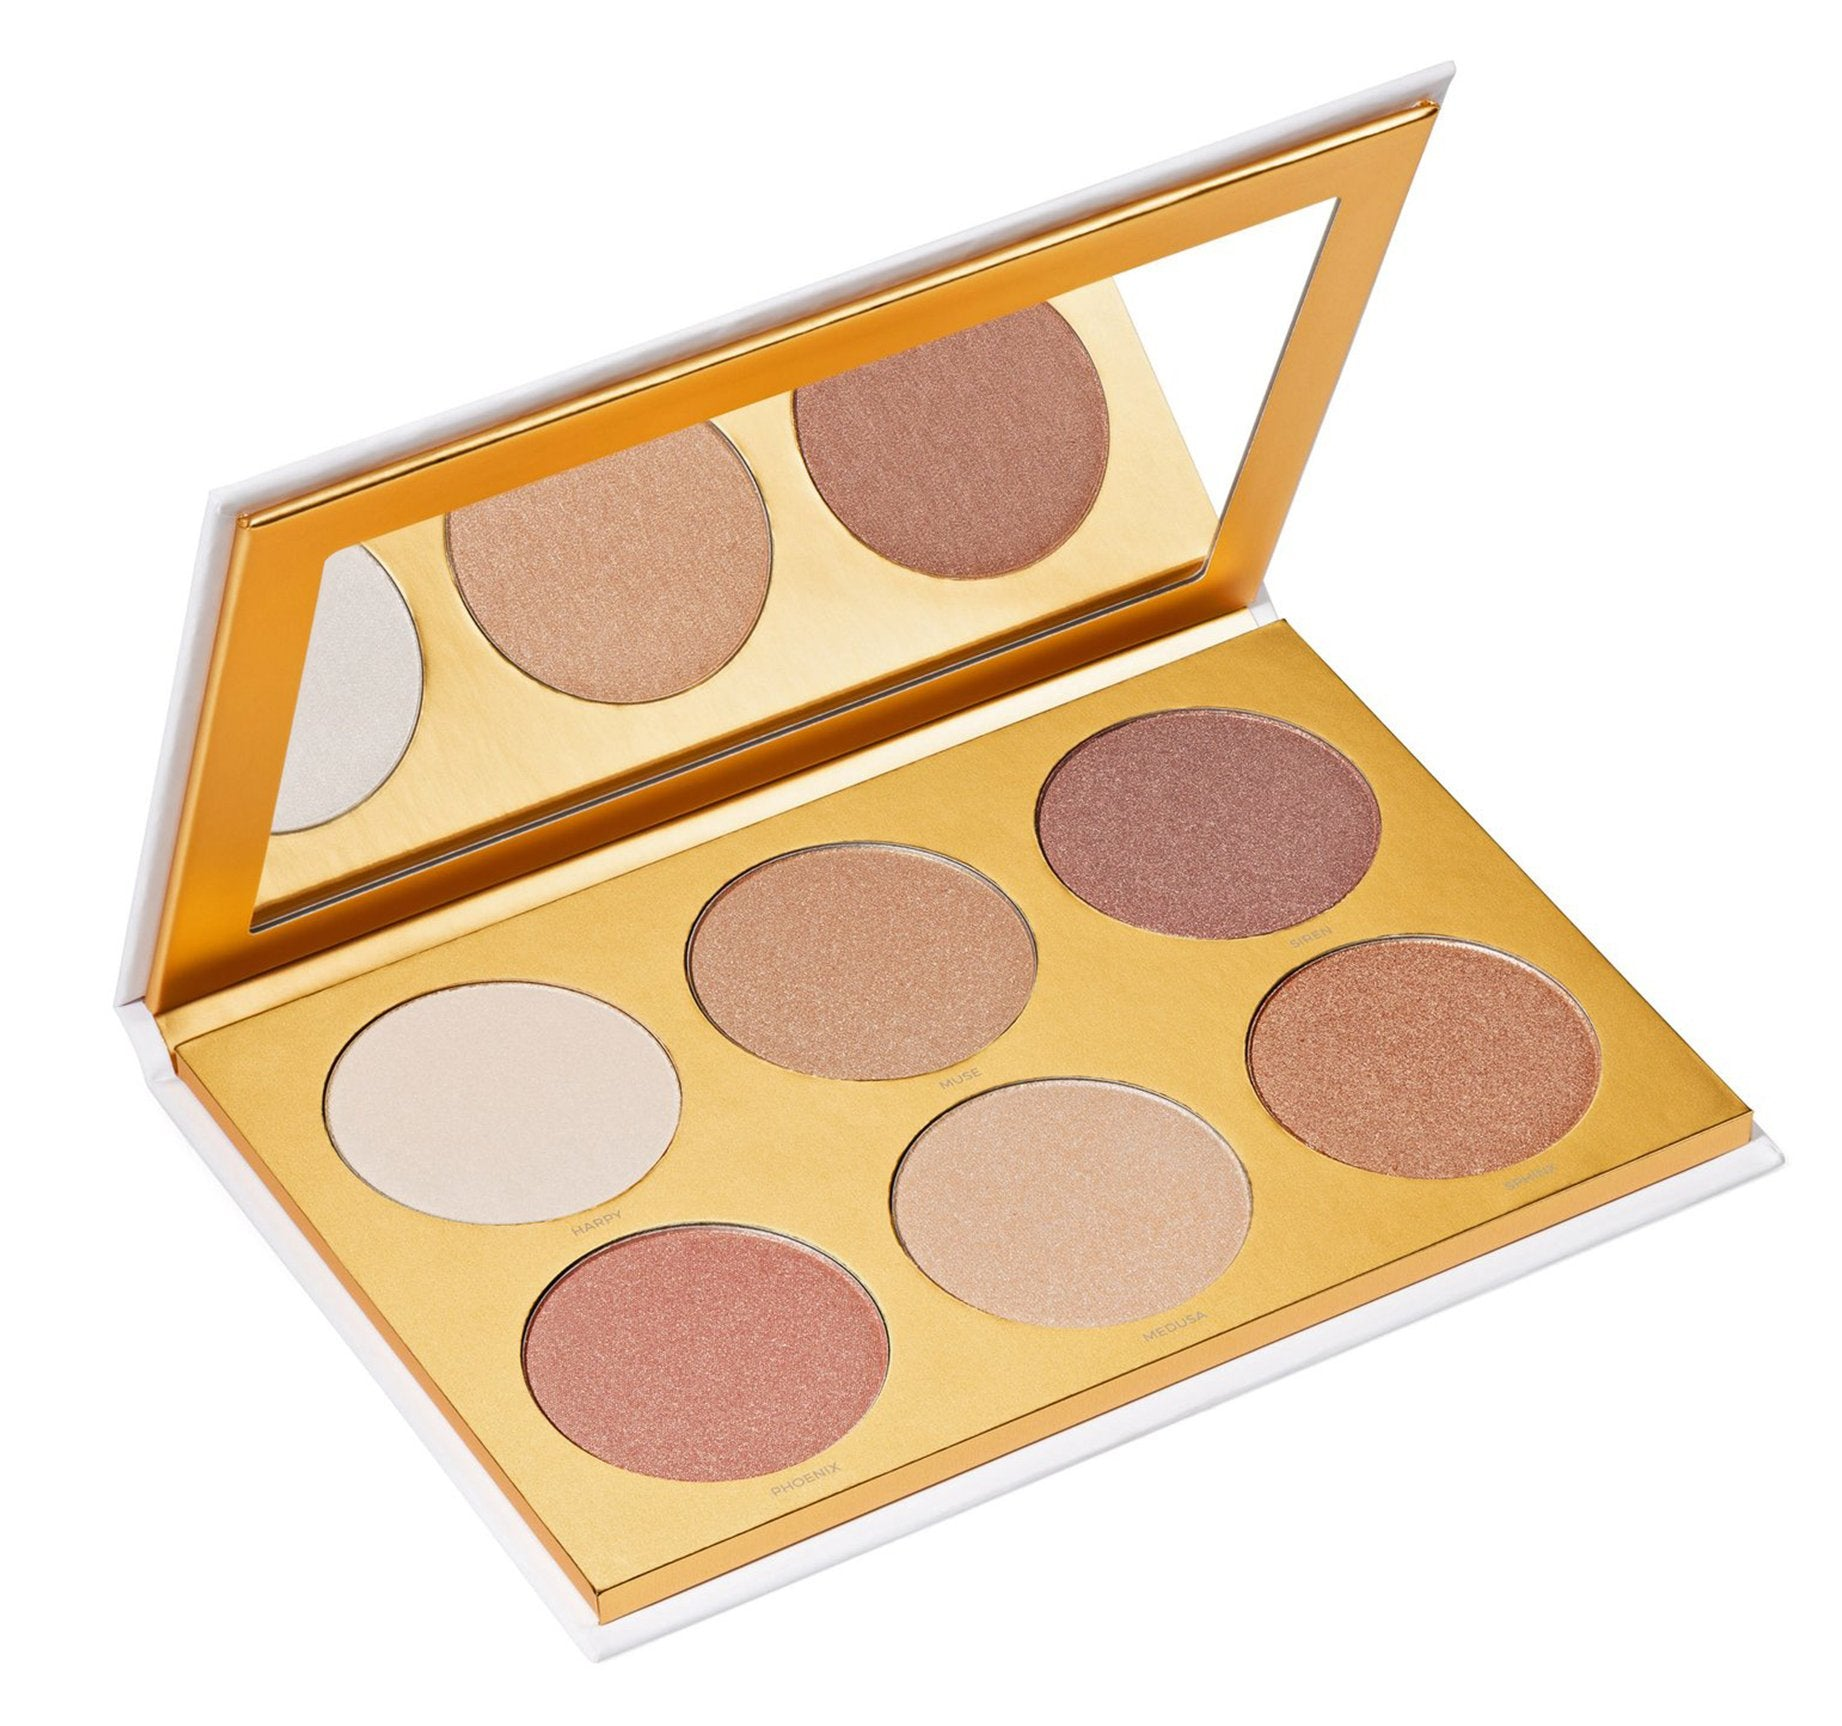 GREEK GODDESS HIGHLIGHTER PALETTE, view larger image